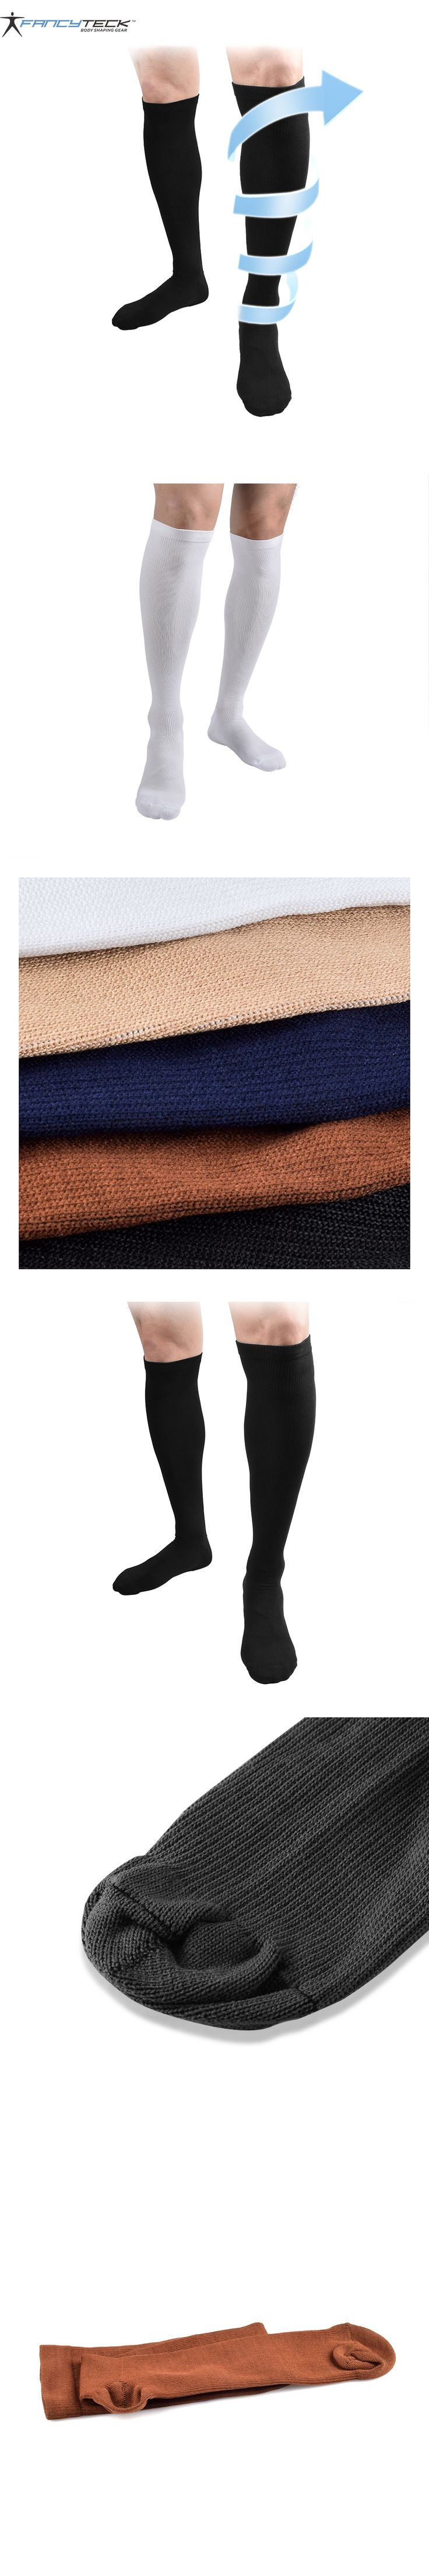 Men Women Long Miracle Compression Knee Socks Blood Circulation stockings Breathable Fat burn leg slimming socks